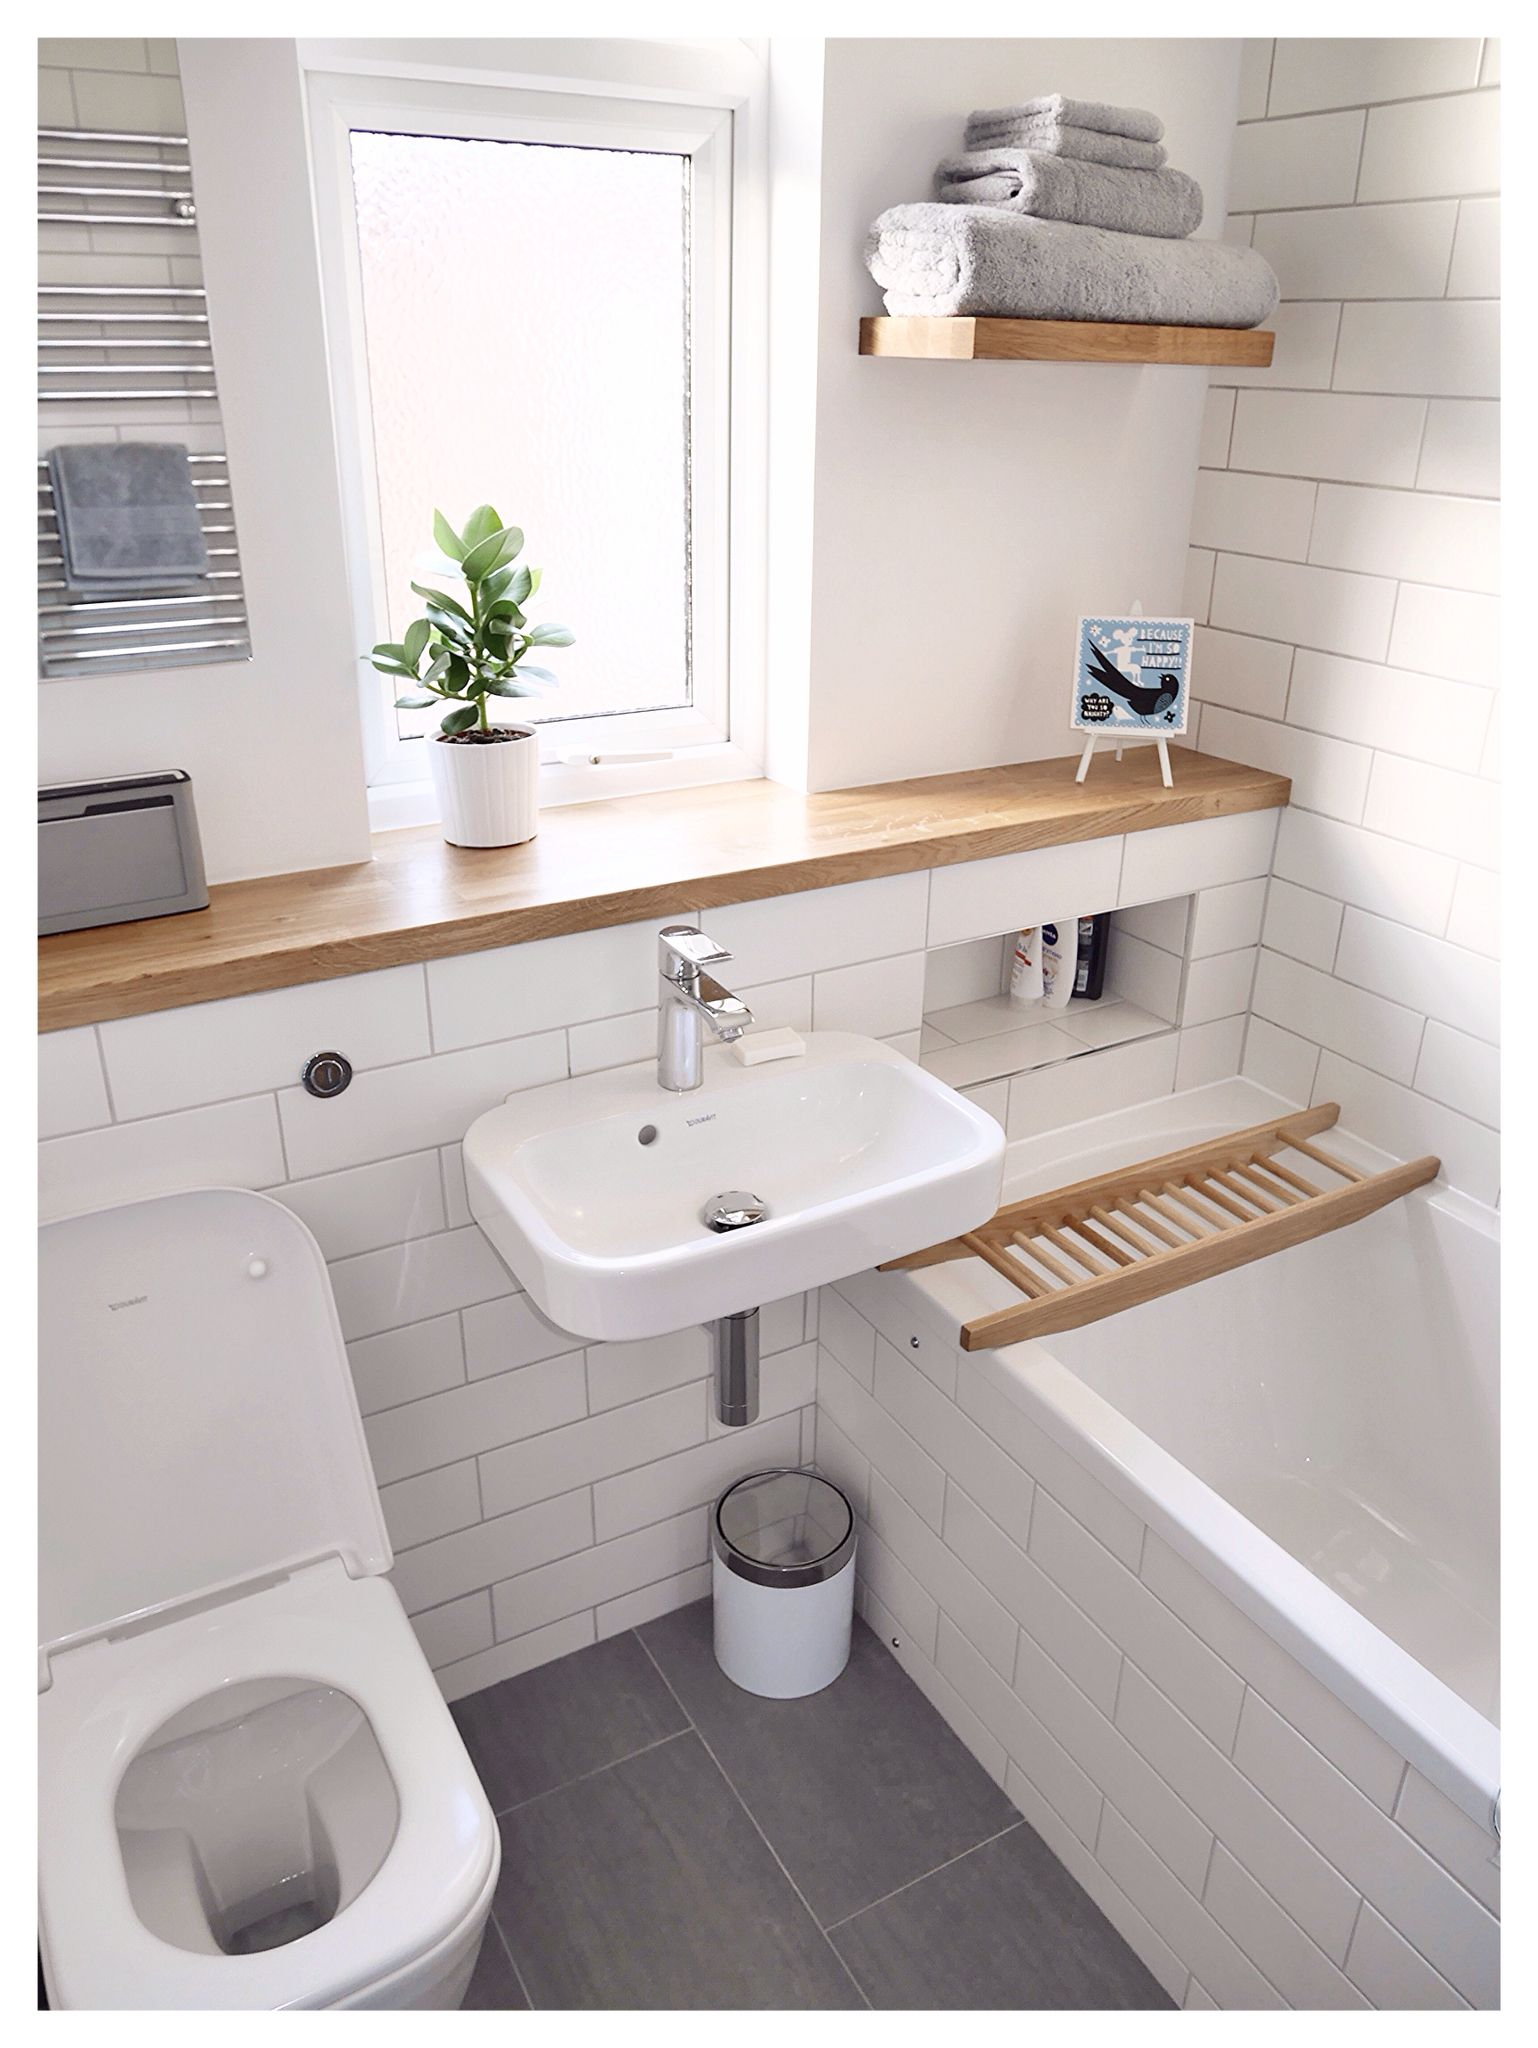 25+ Beautiful Small Bathroom Ideas | House | Pinterest | Oak shelves ...